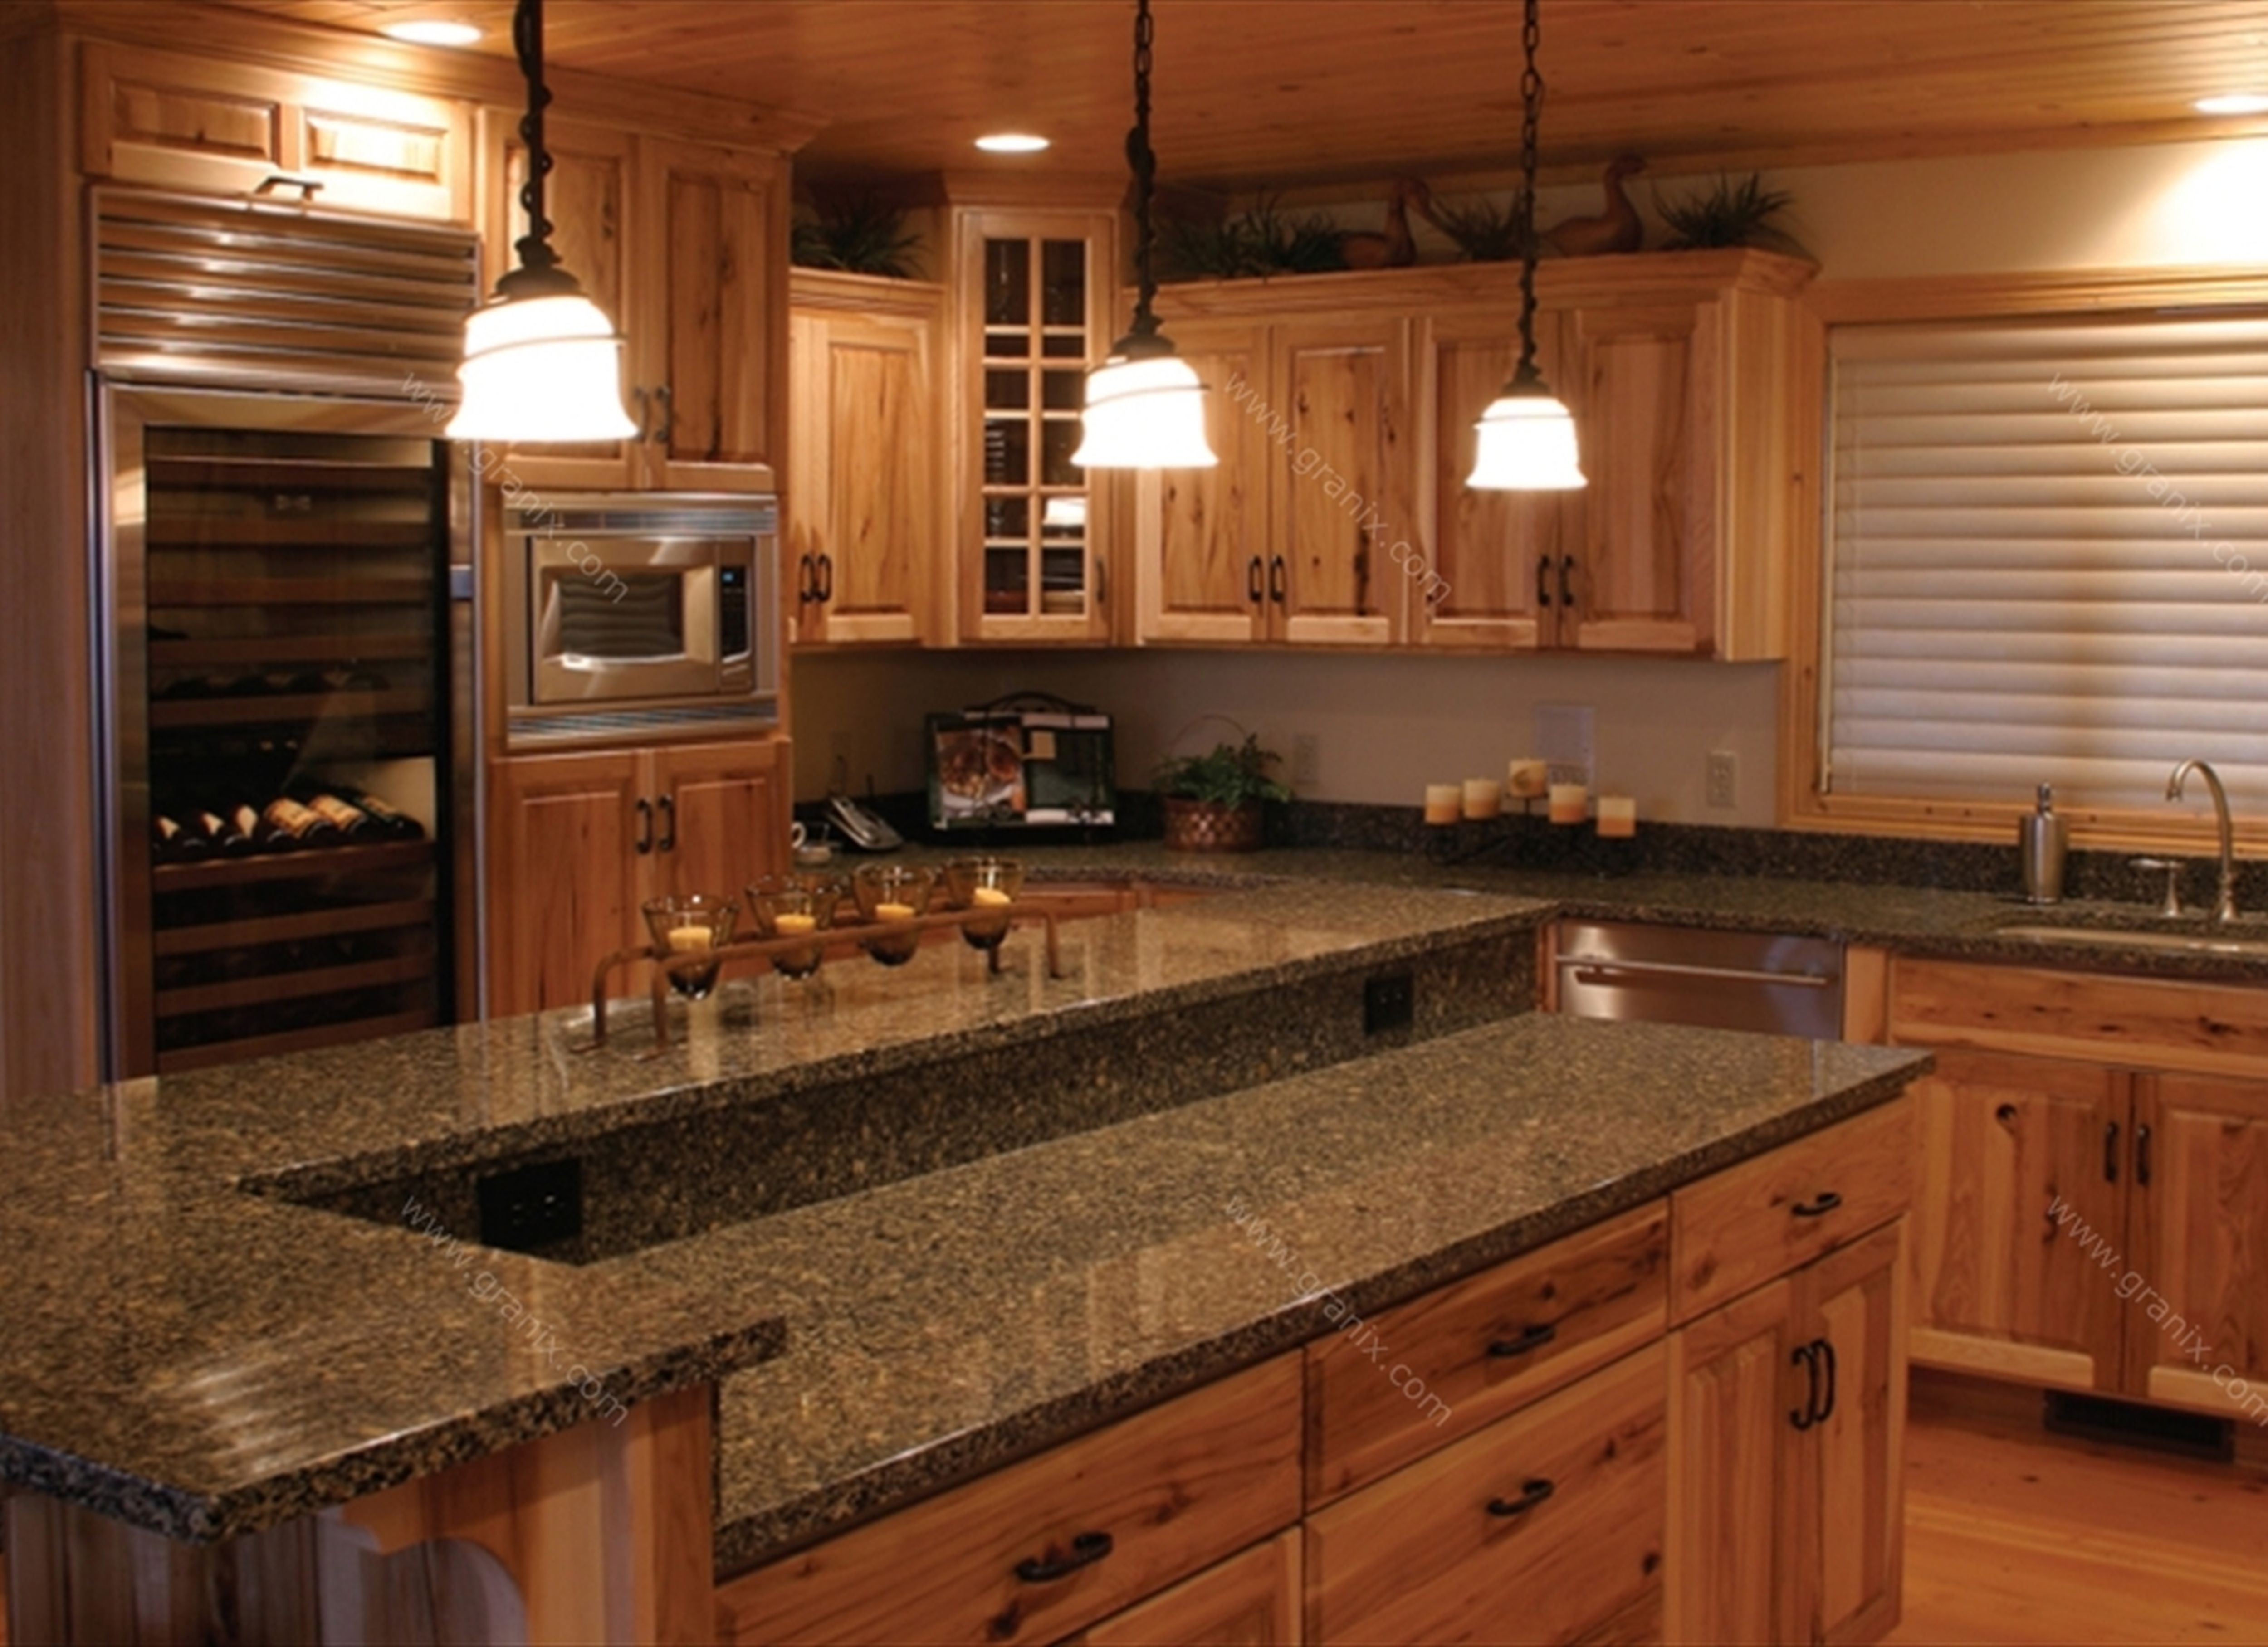 Merveilleux Cozy Lowes Quartz Countertops For Your Kitchen Design Ideas: Traditional Kitchen  Design With Lowes Quartz